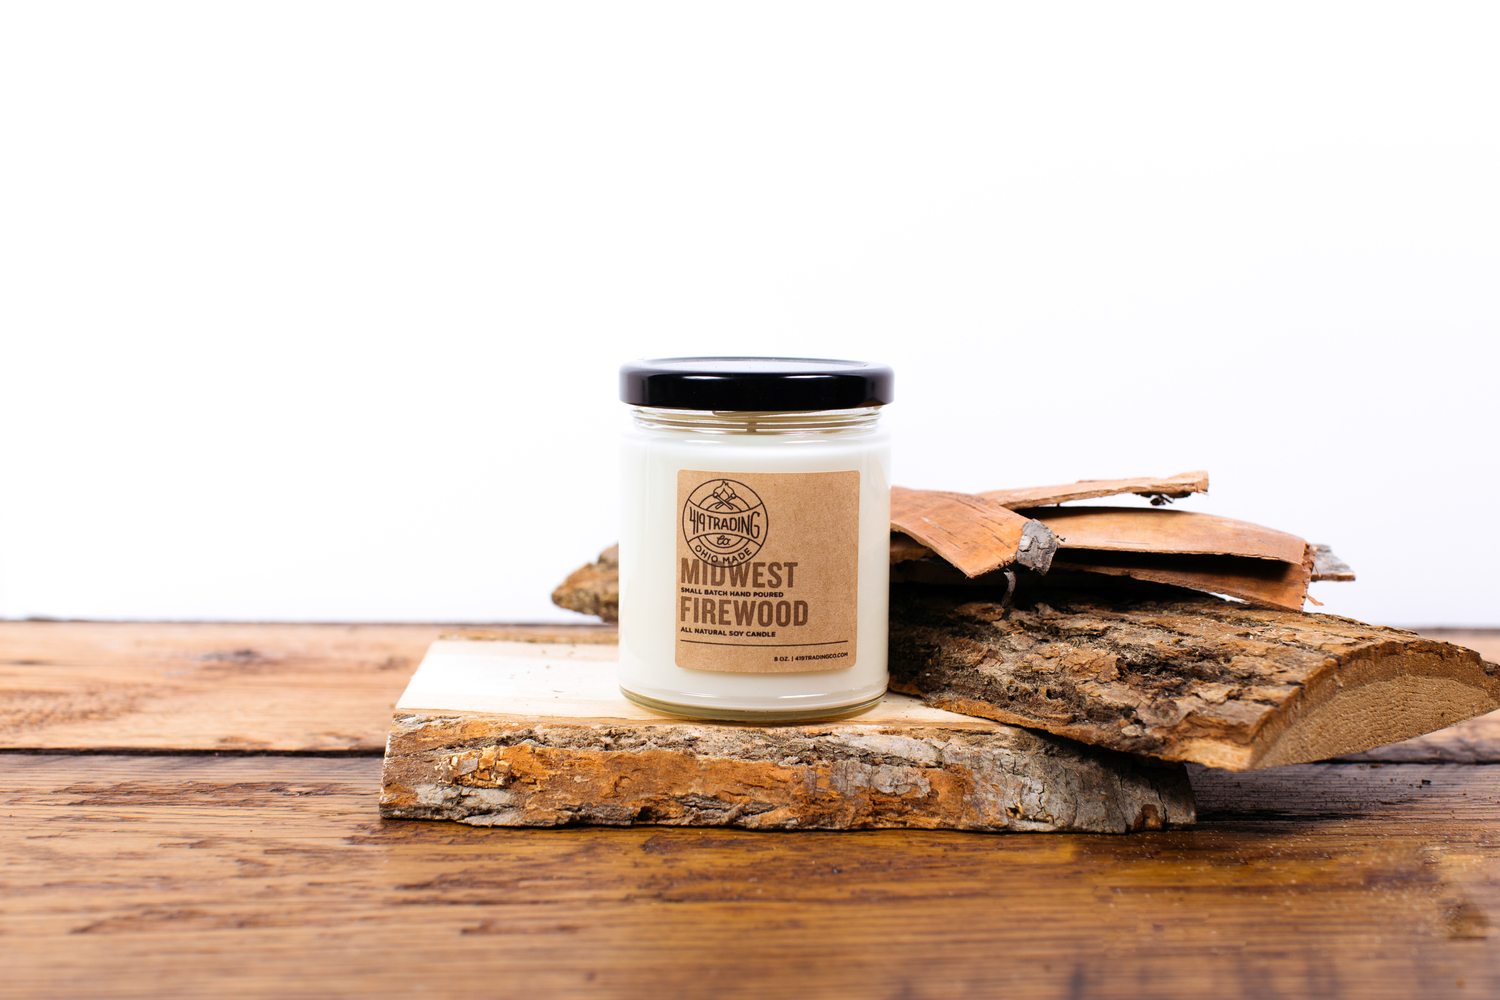 Midwest Firewood Candle, $15